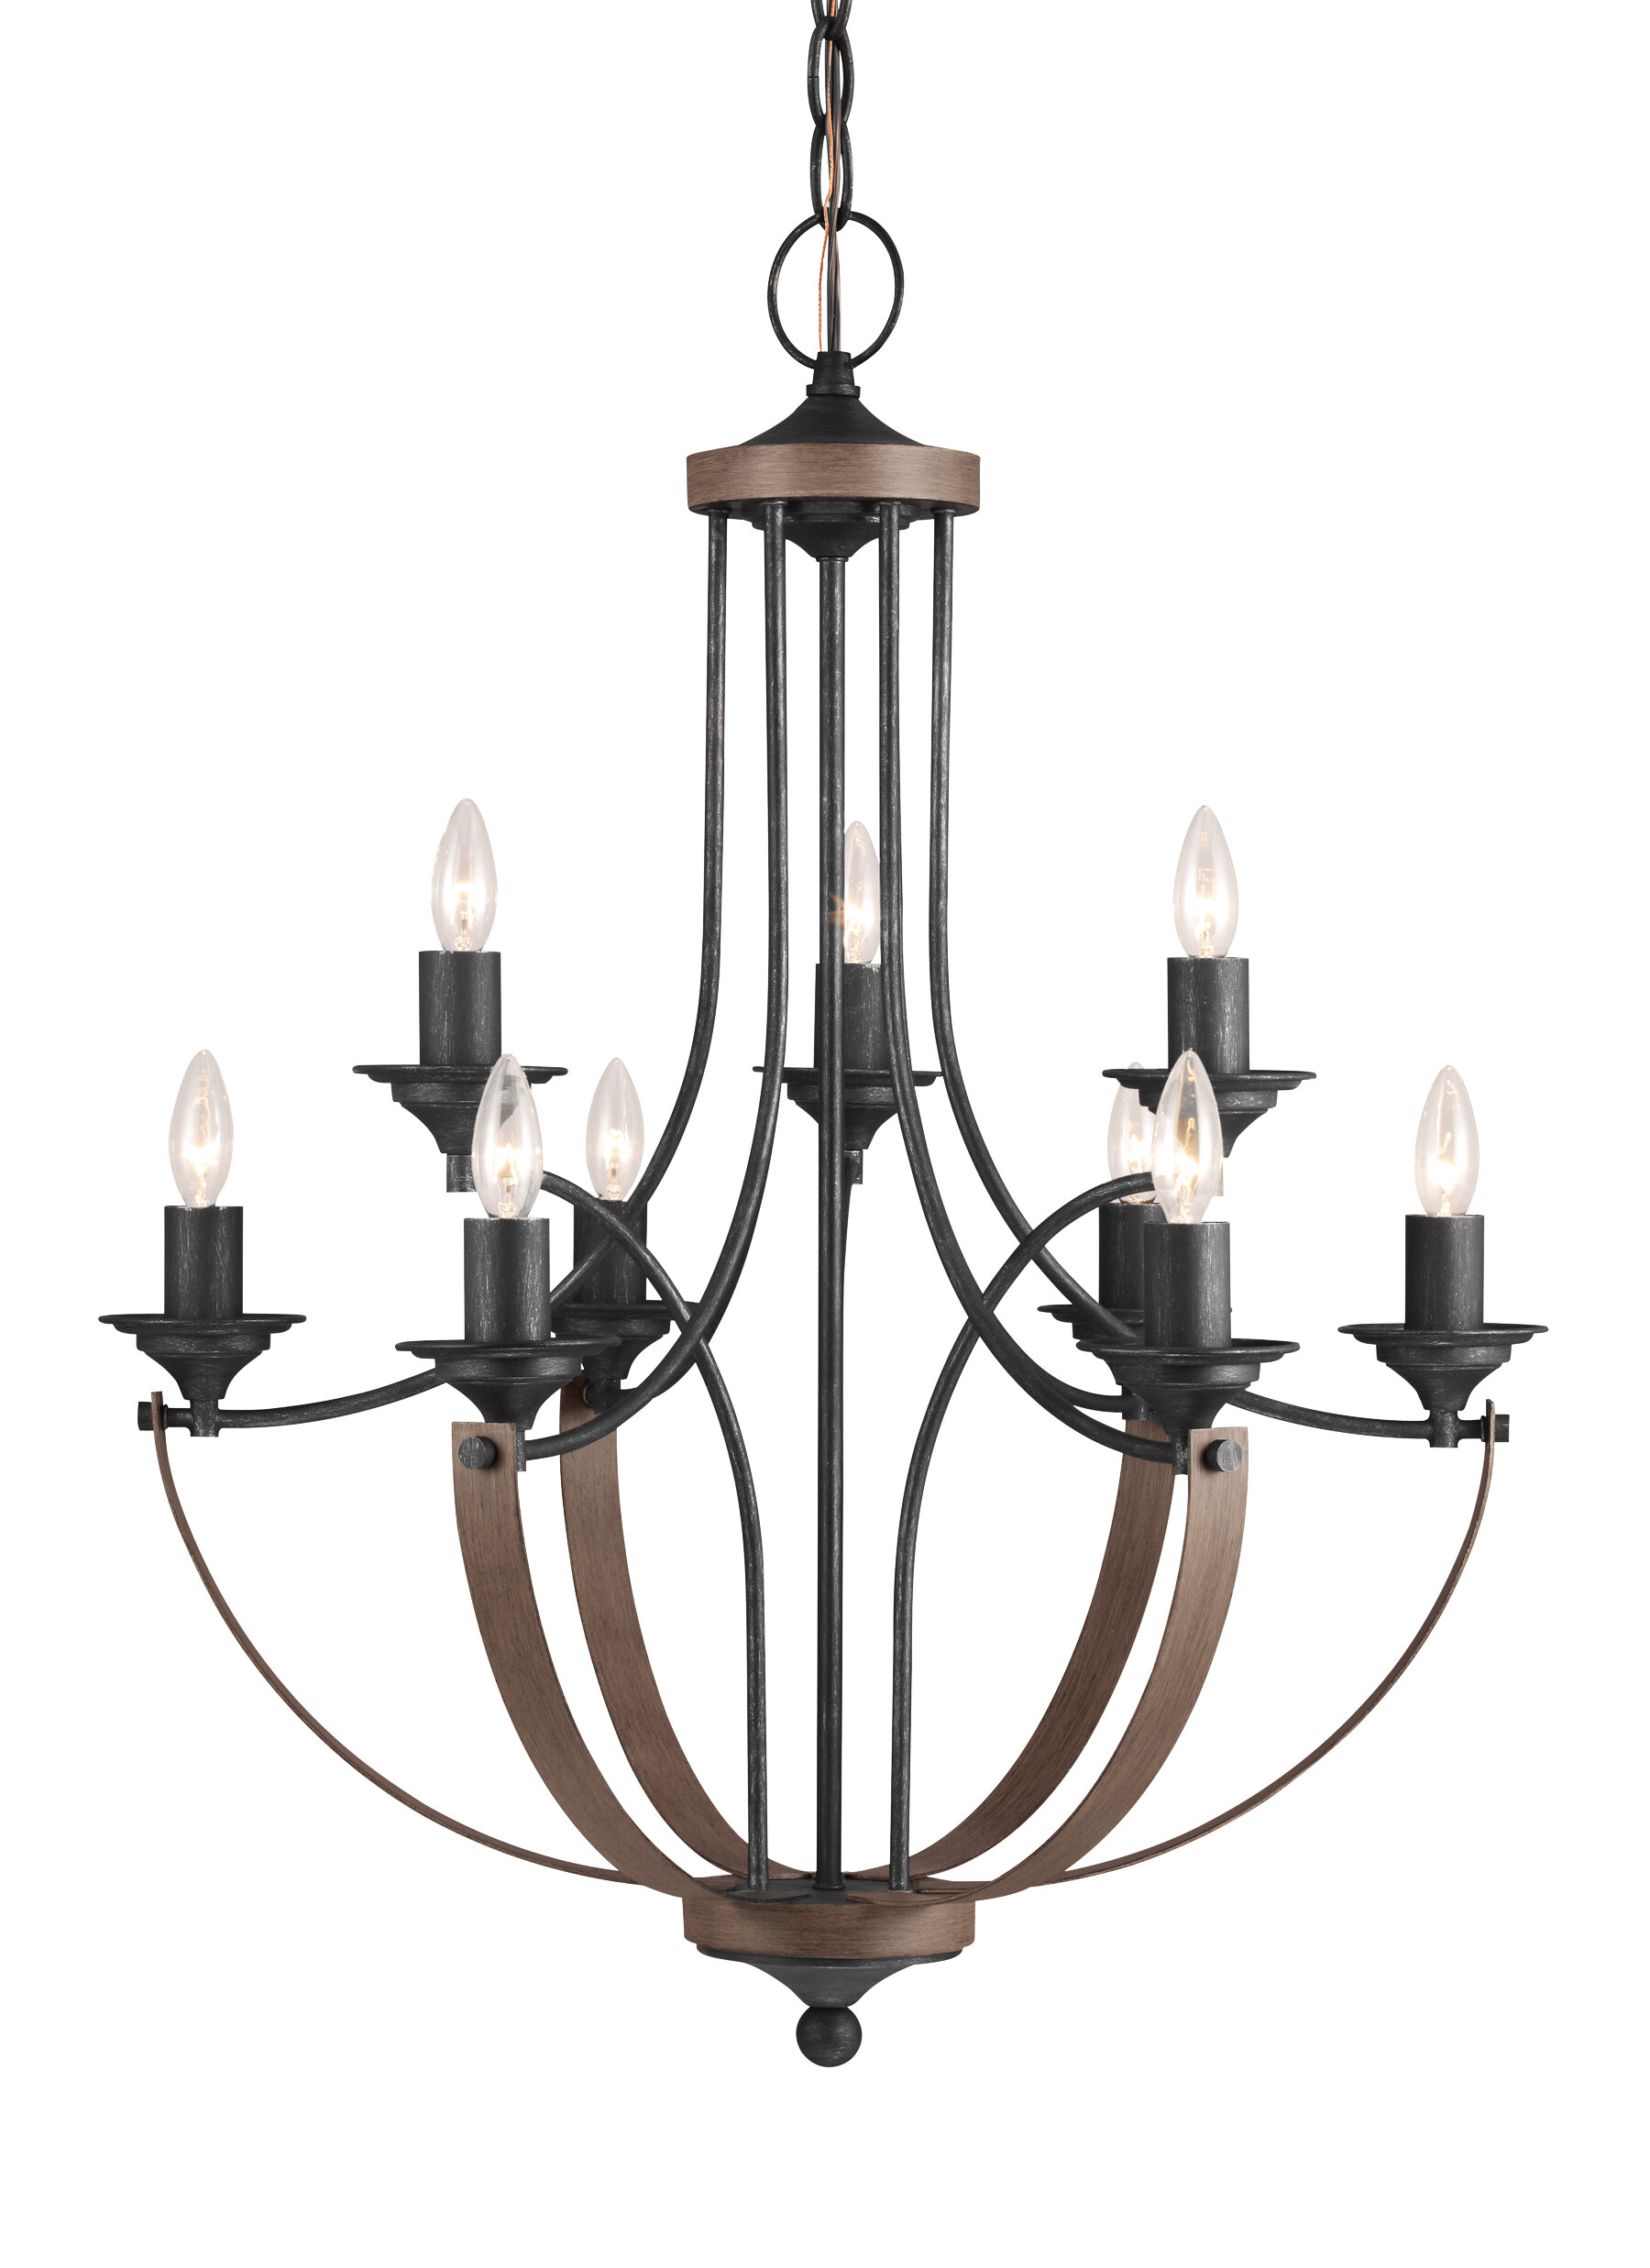 Camilla 9 light candle style chandelier reviews birch lane mozeypictures Choice Image